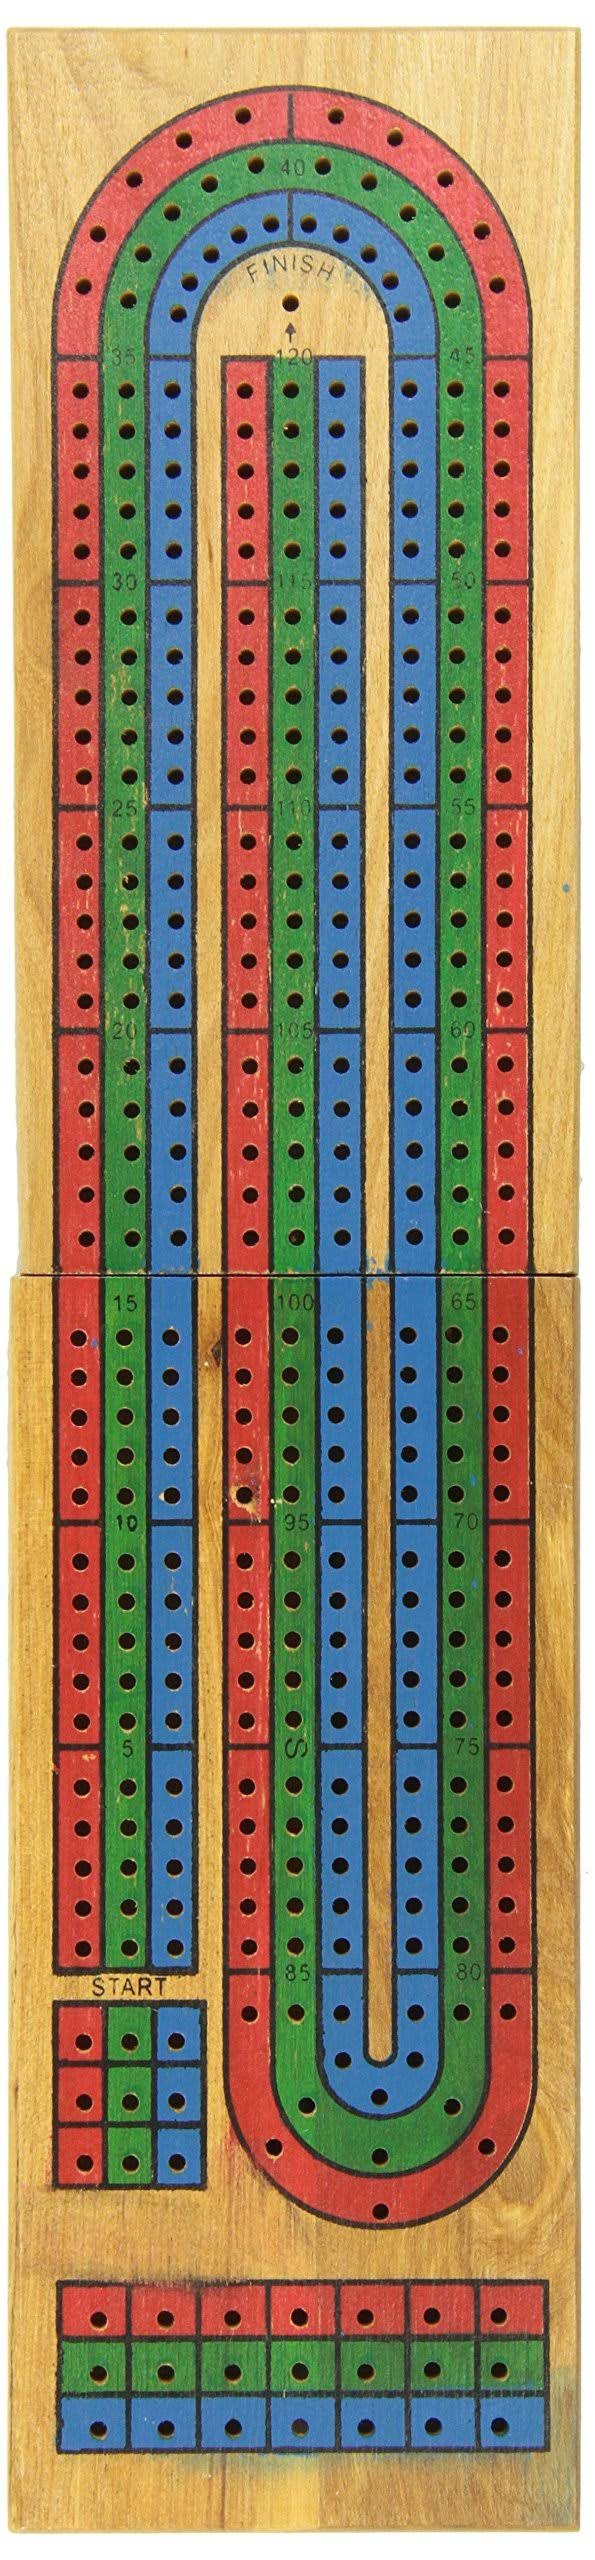 Cardinal Classic Games Solid Wood 3 Track Cribbage Board Game